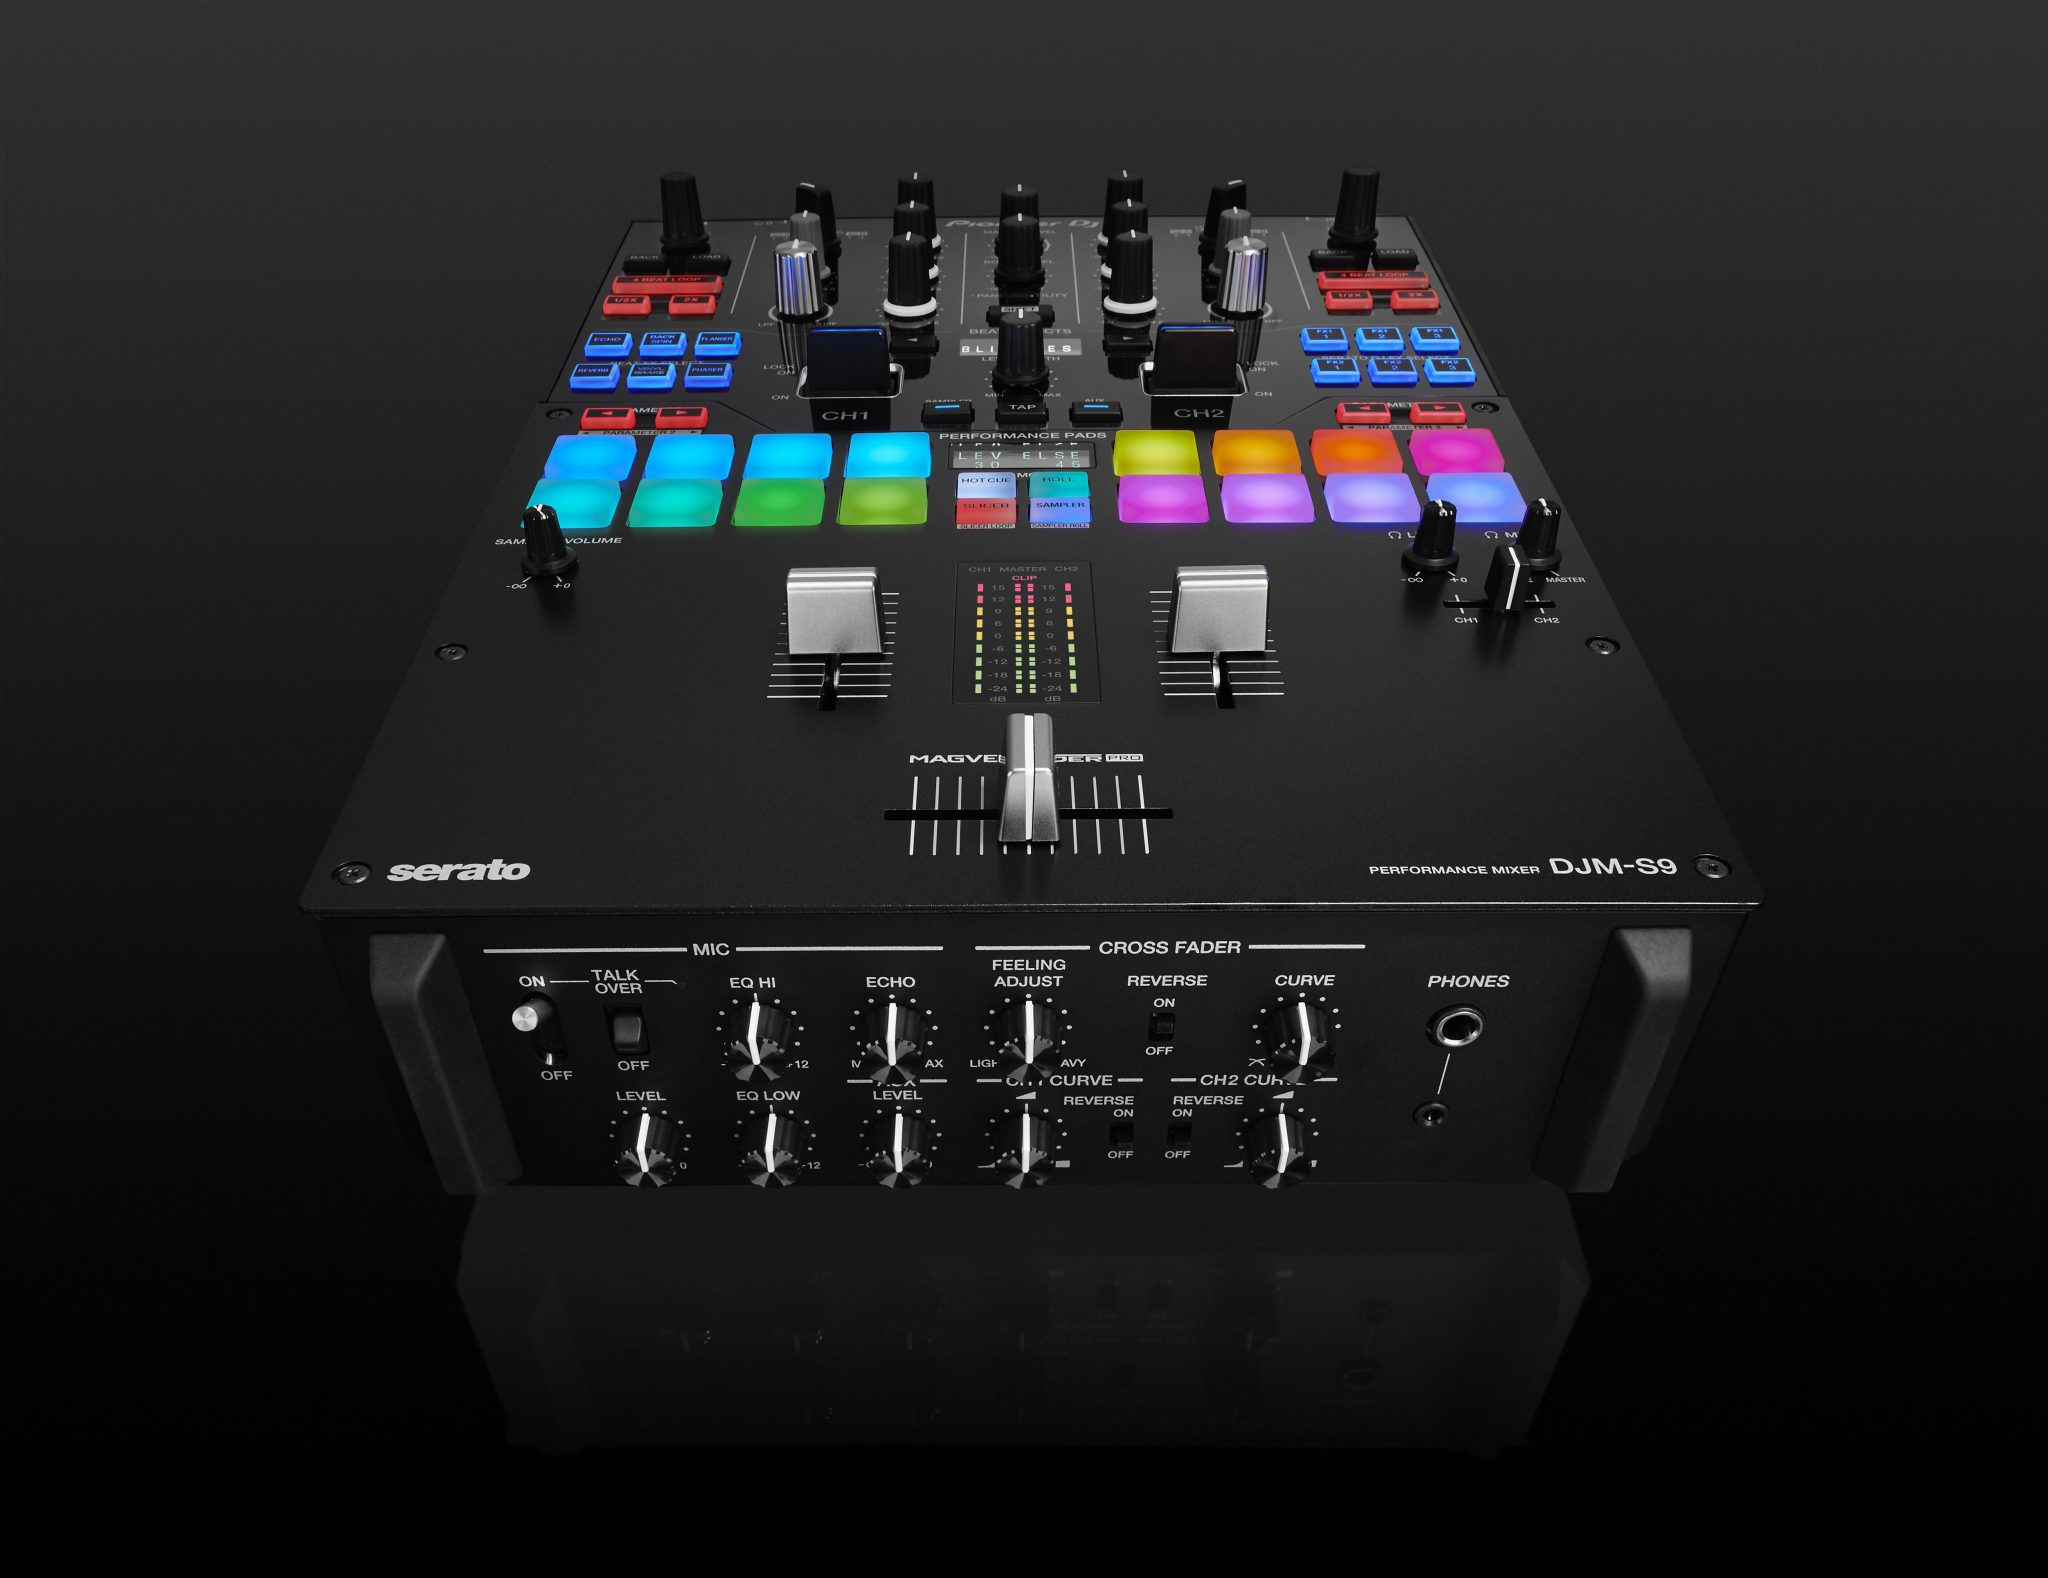 buttons and bling pioneer dj 39 s djm s9 serato dj mixer djworx. Black Bedroom Furniture Sets. Home Design Ideas